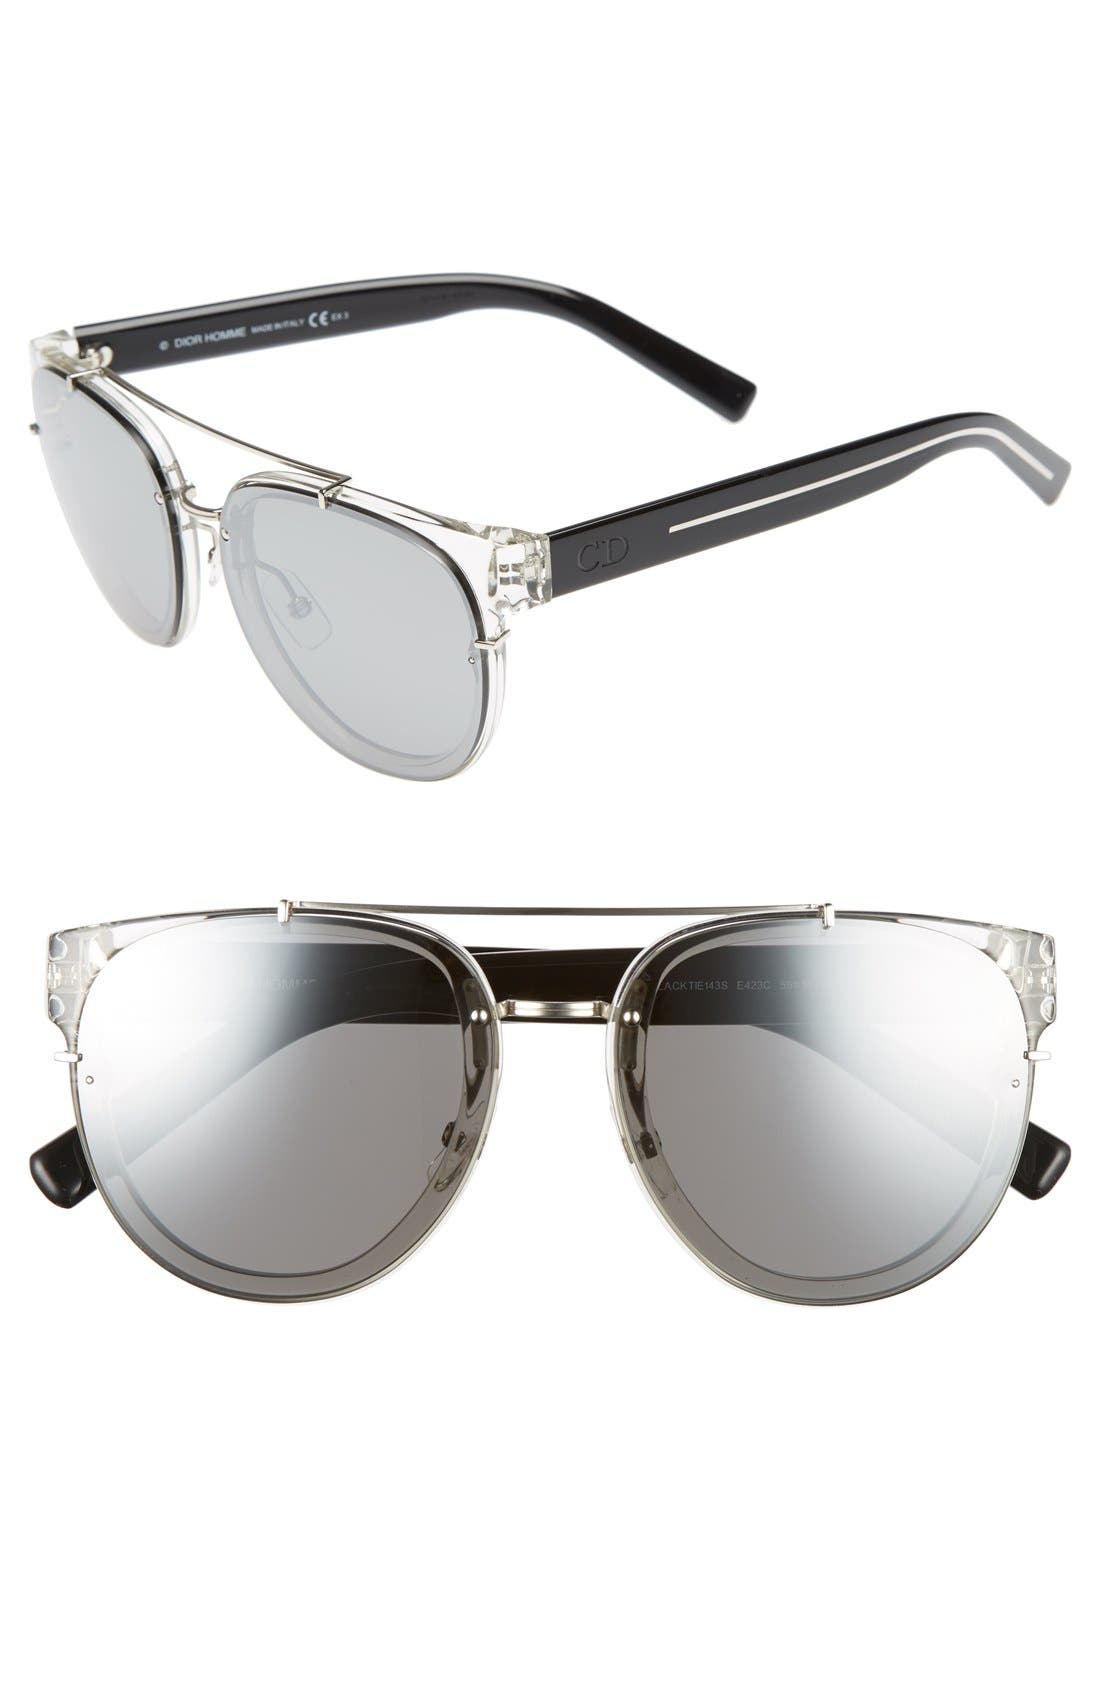 Main Image - Dior Homme 'Black Tie' 56mm Sunglasses